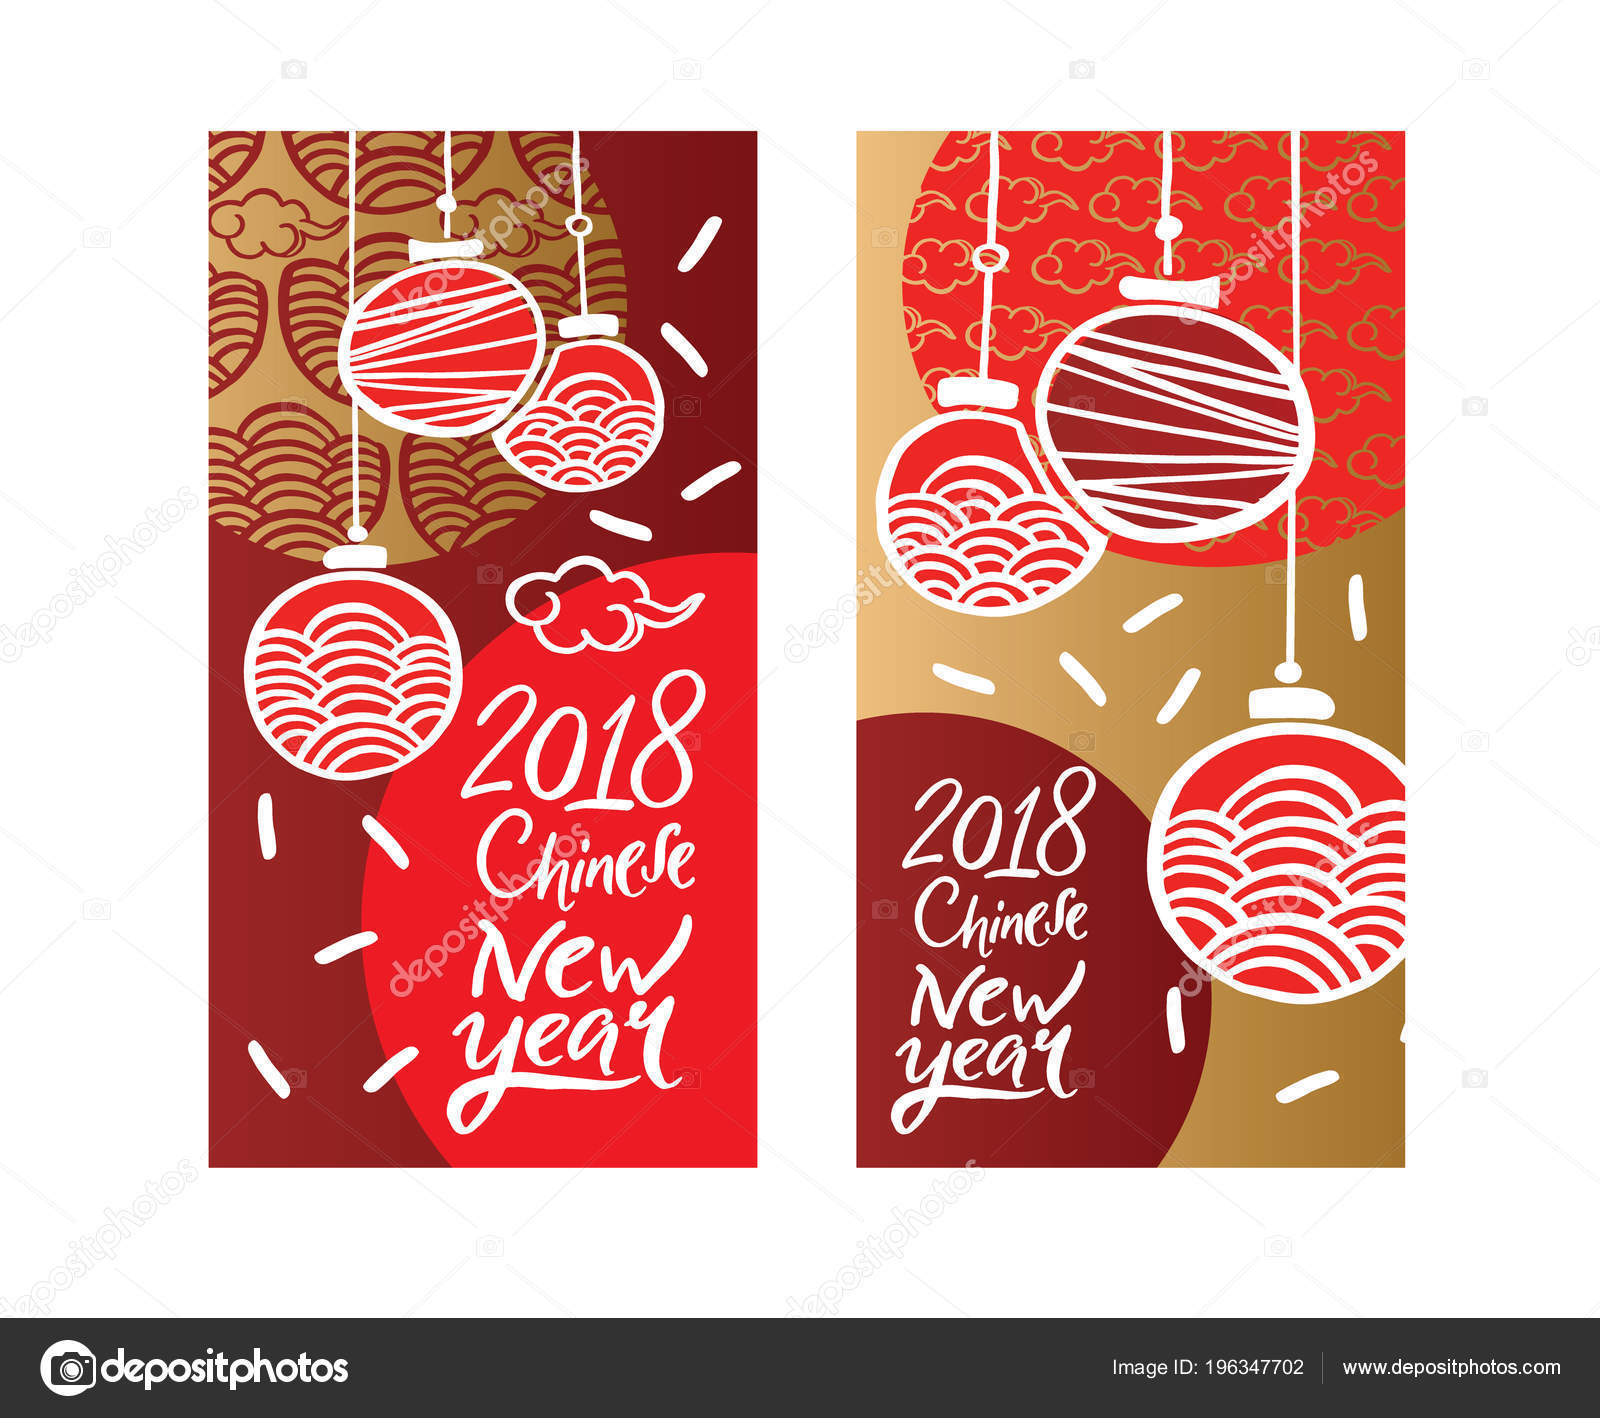 2018 Chinese New Year Greeting Card Two Sides Poster Flyer Stock